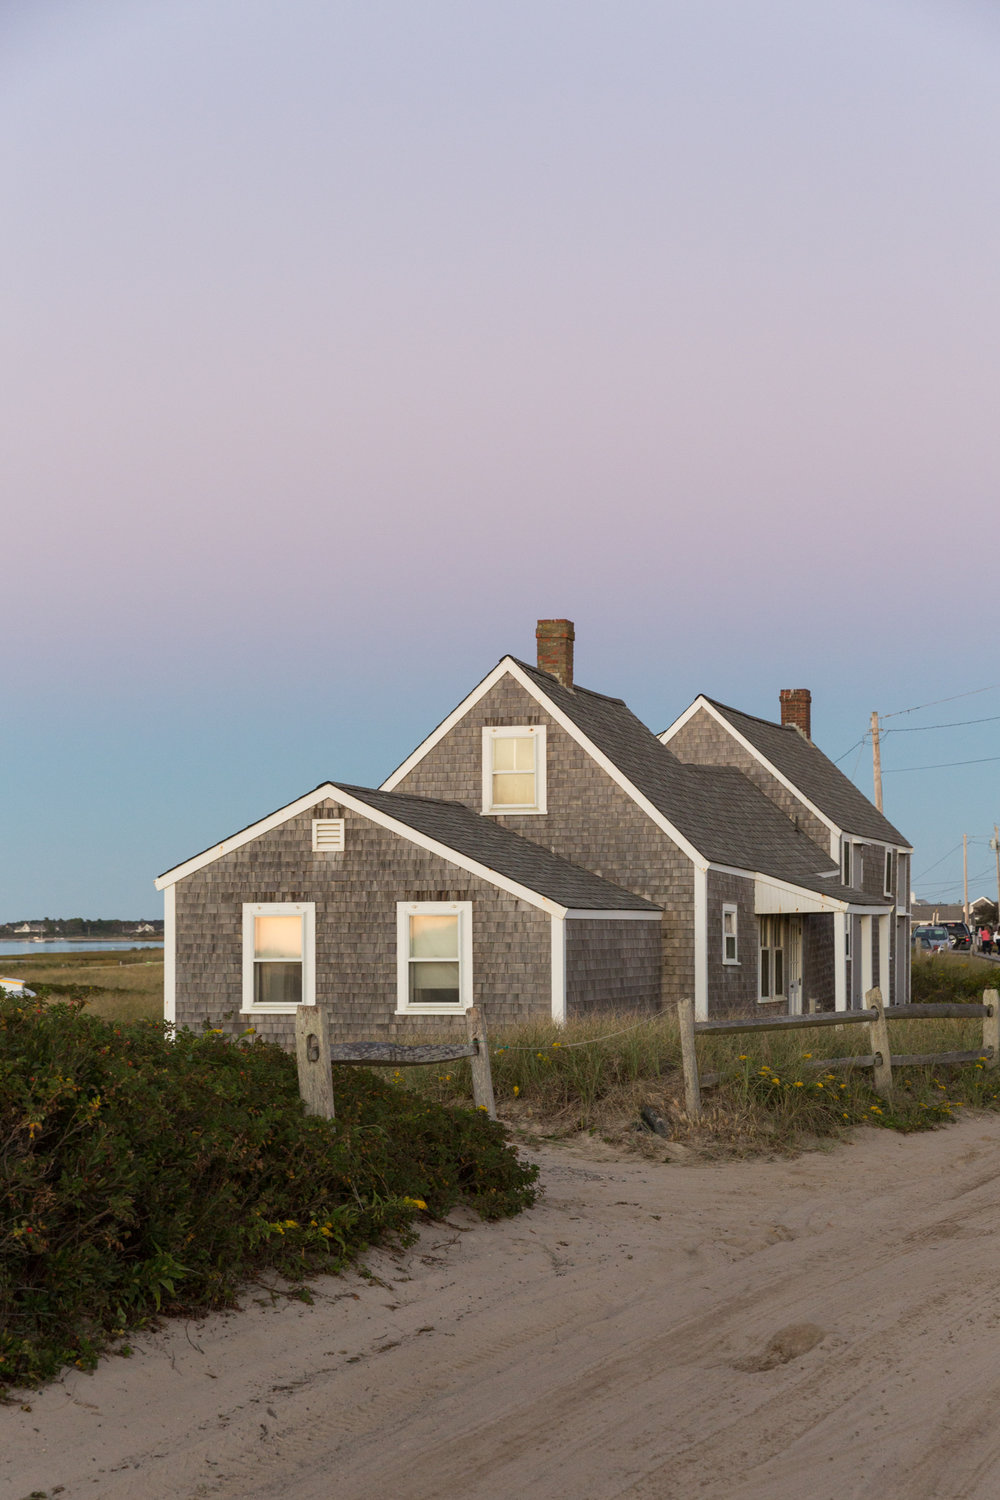 1610-Nantucket-365.jpg